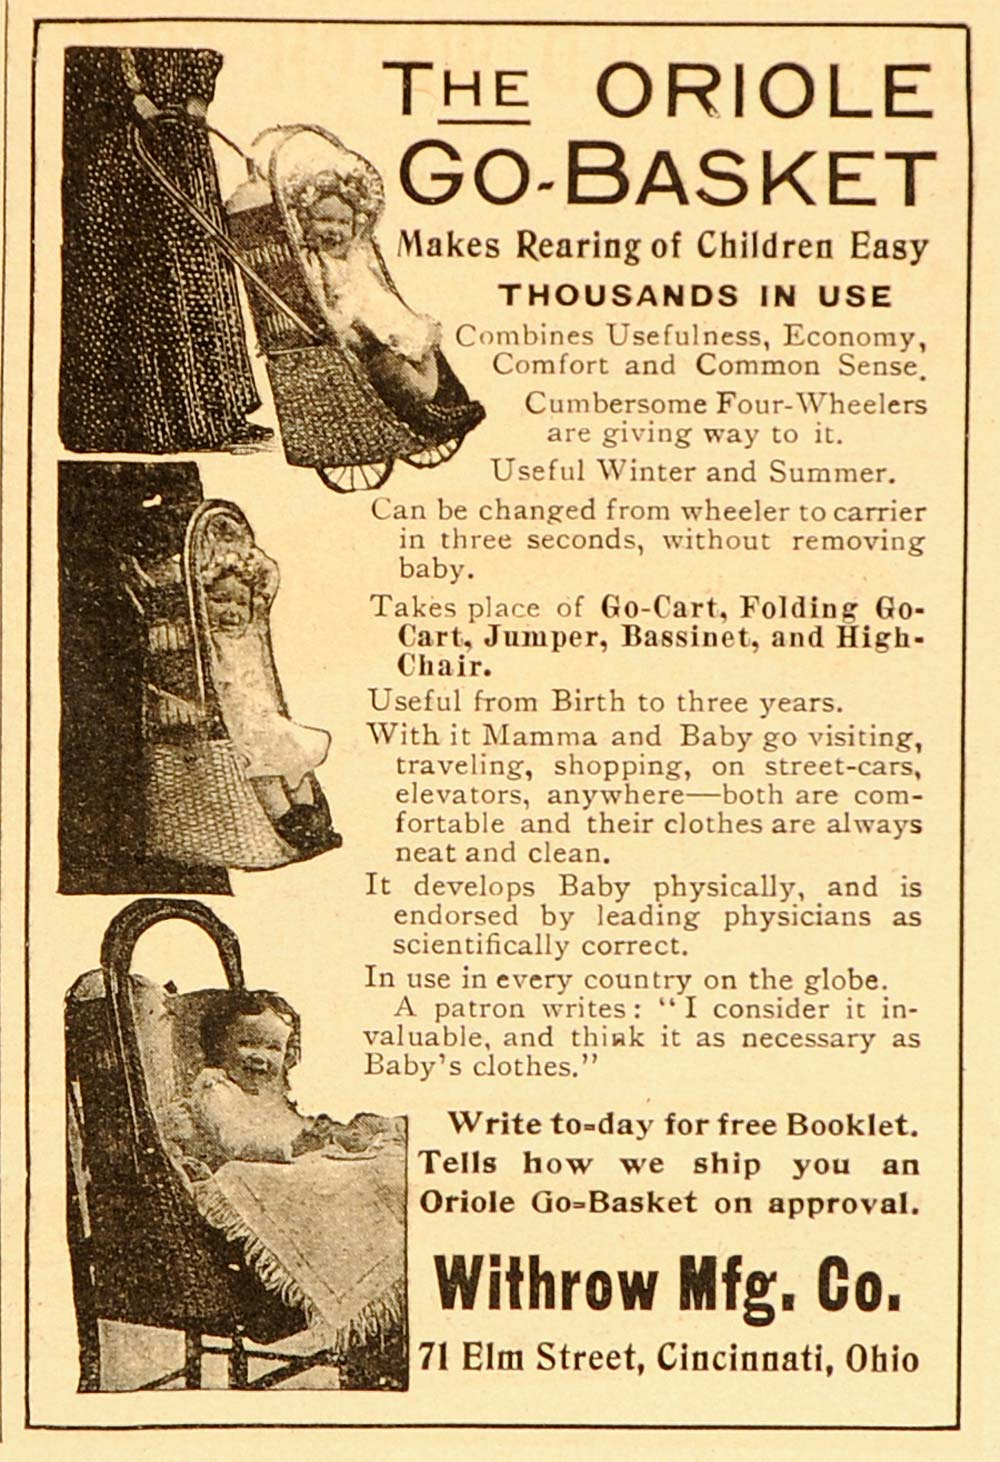 1906 Vintage Ad Oriole Go Basket Baby Carriage Stroller - ORIGINAL ADVERTISING